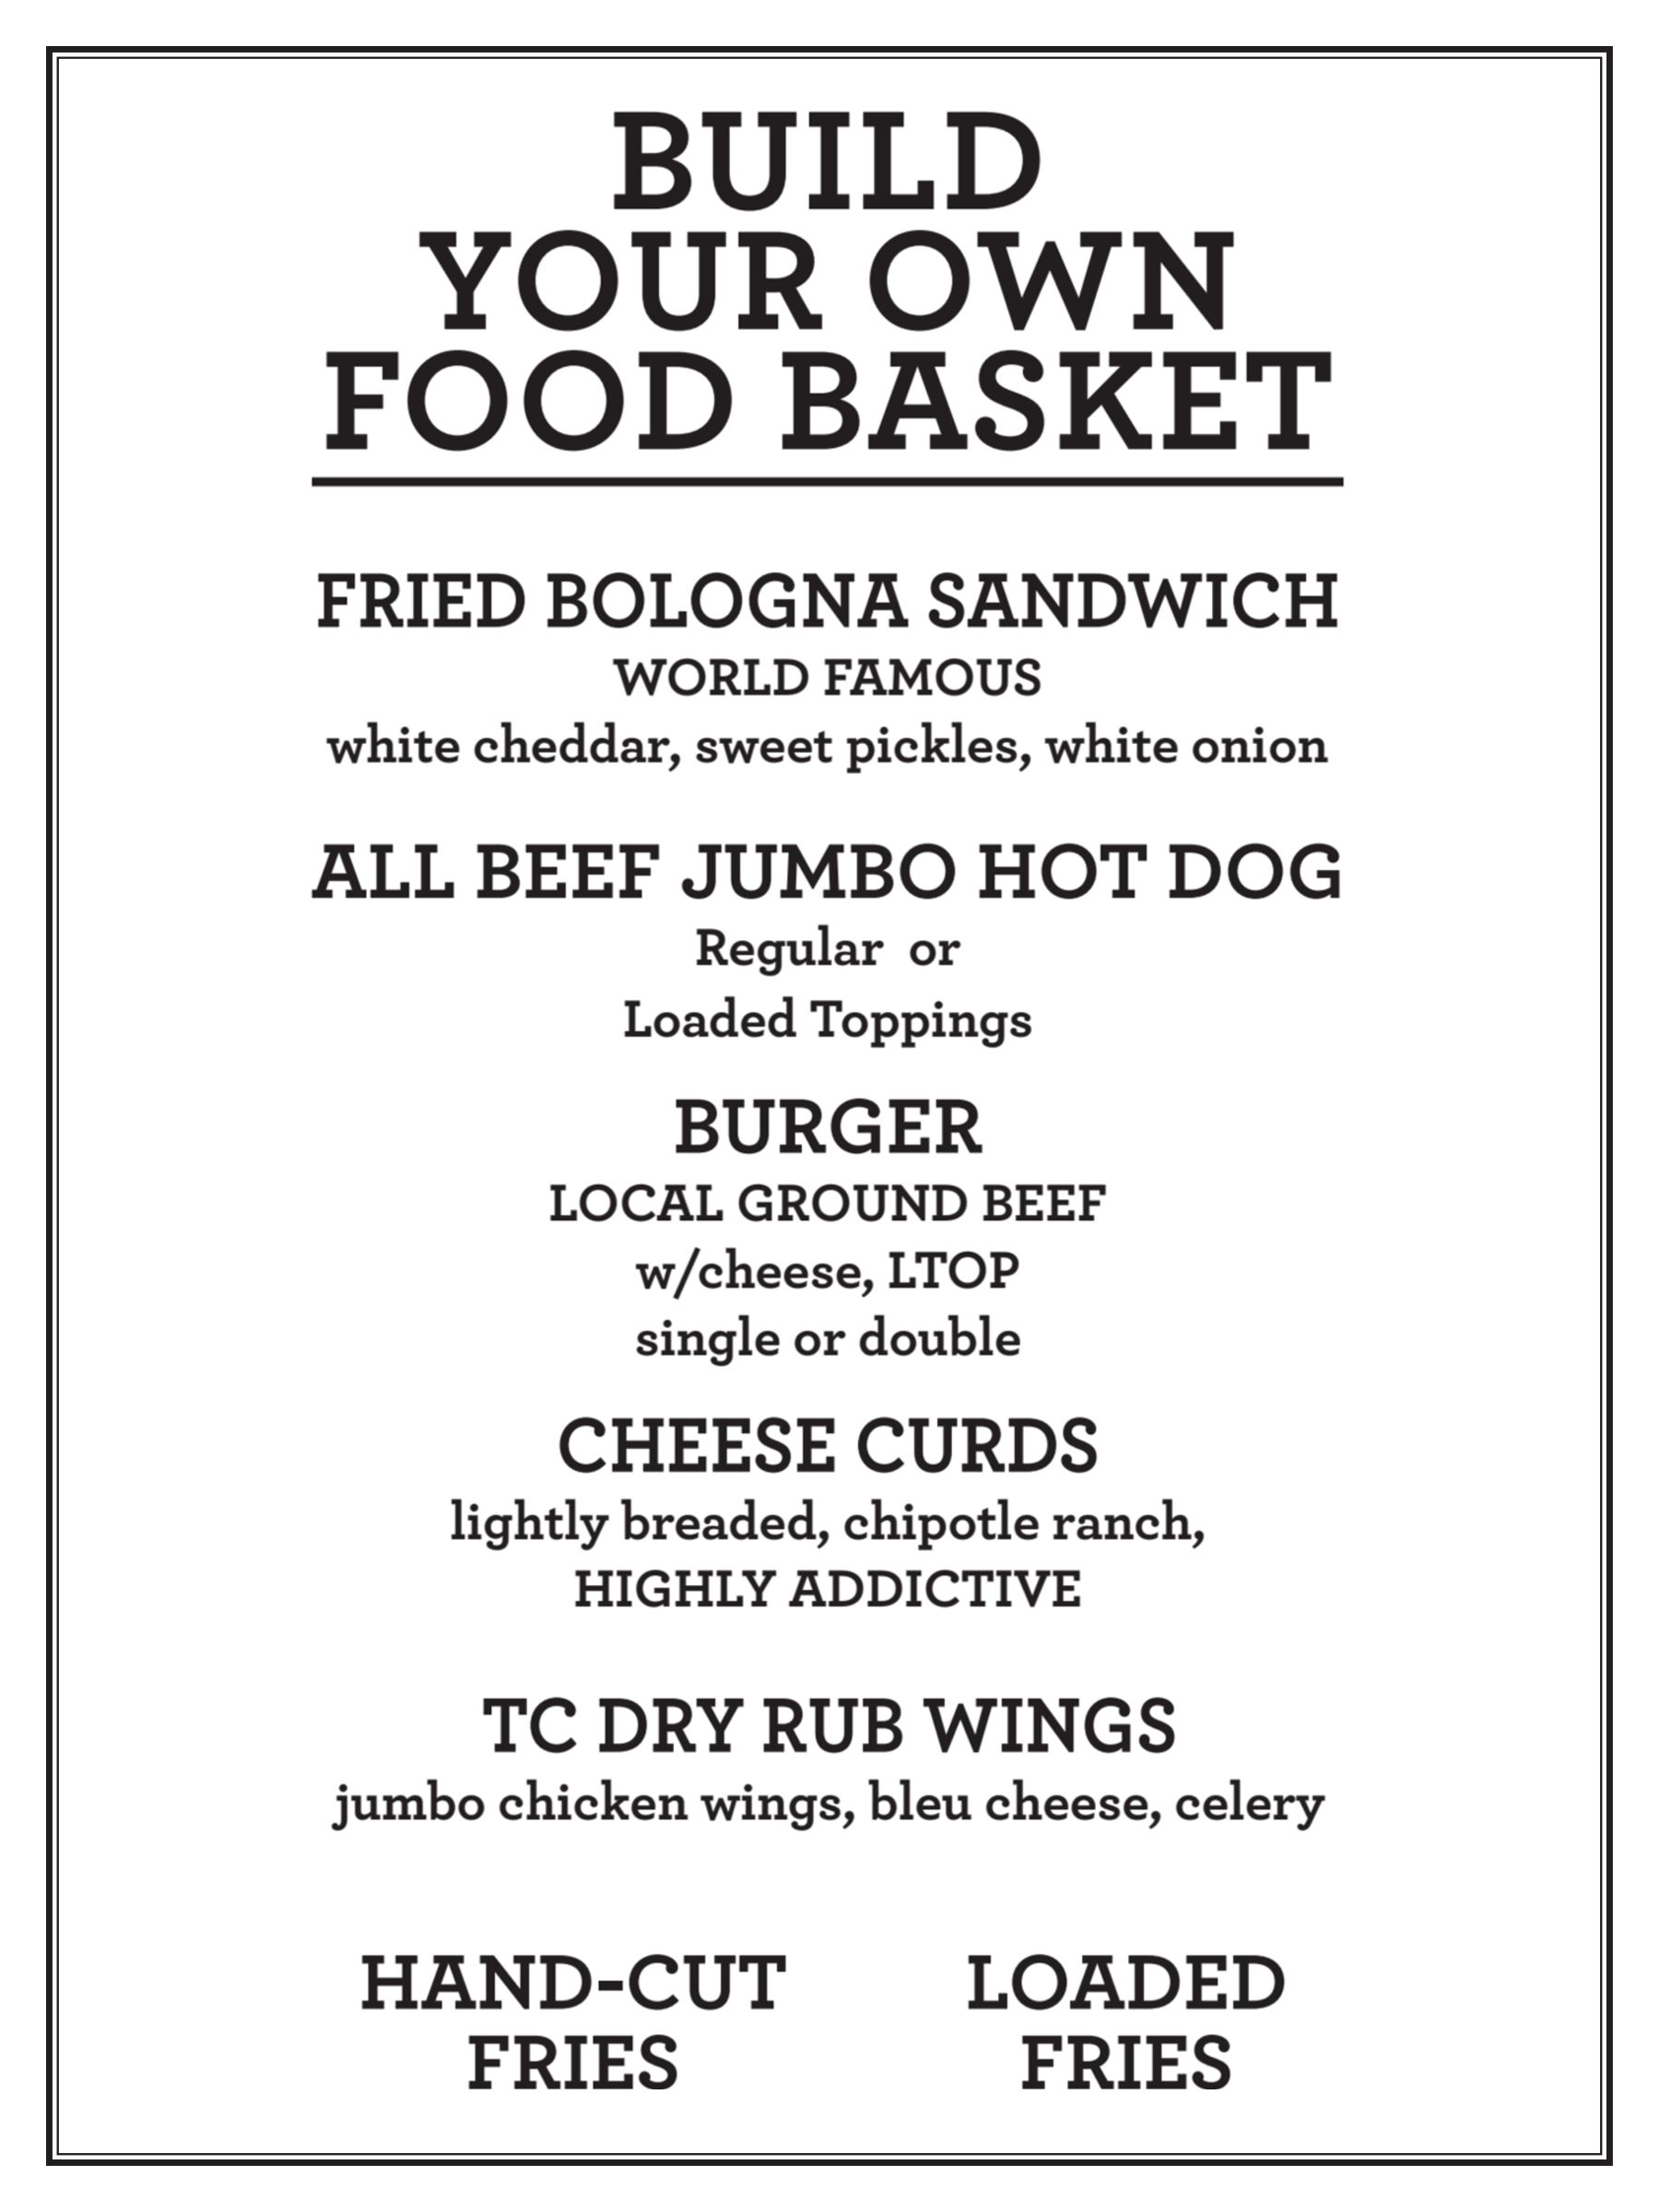 food_basket_menu